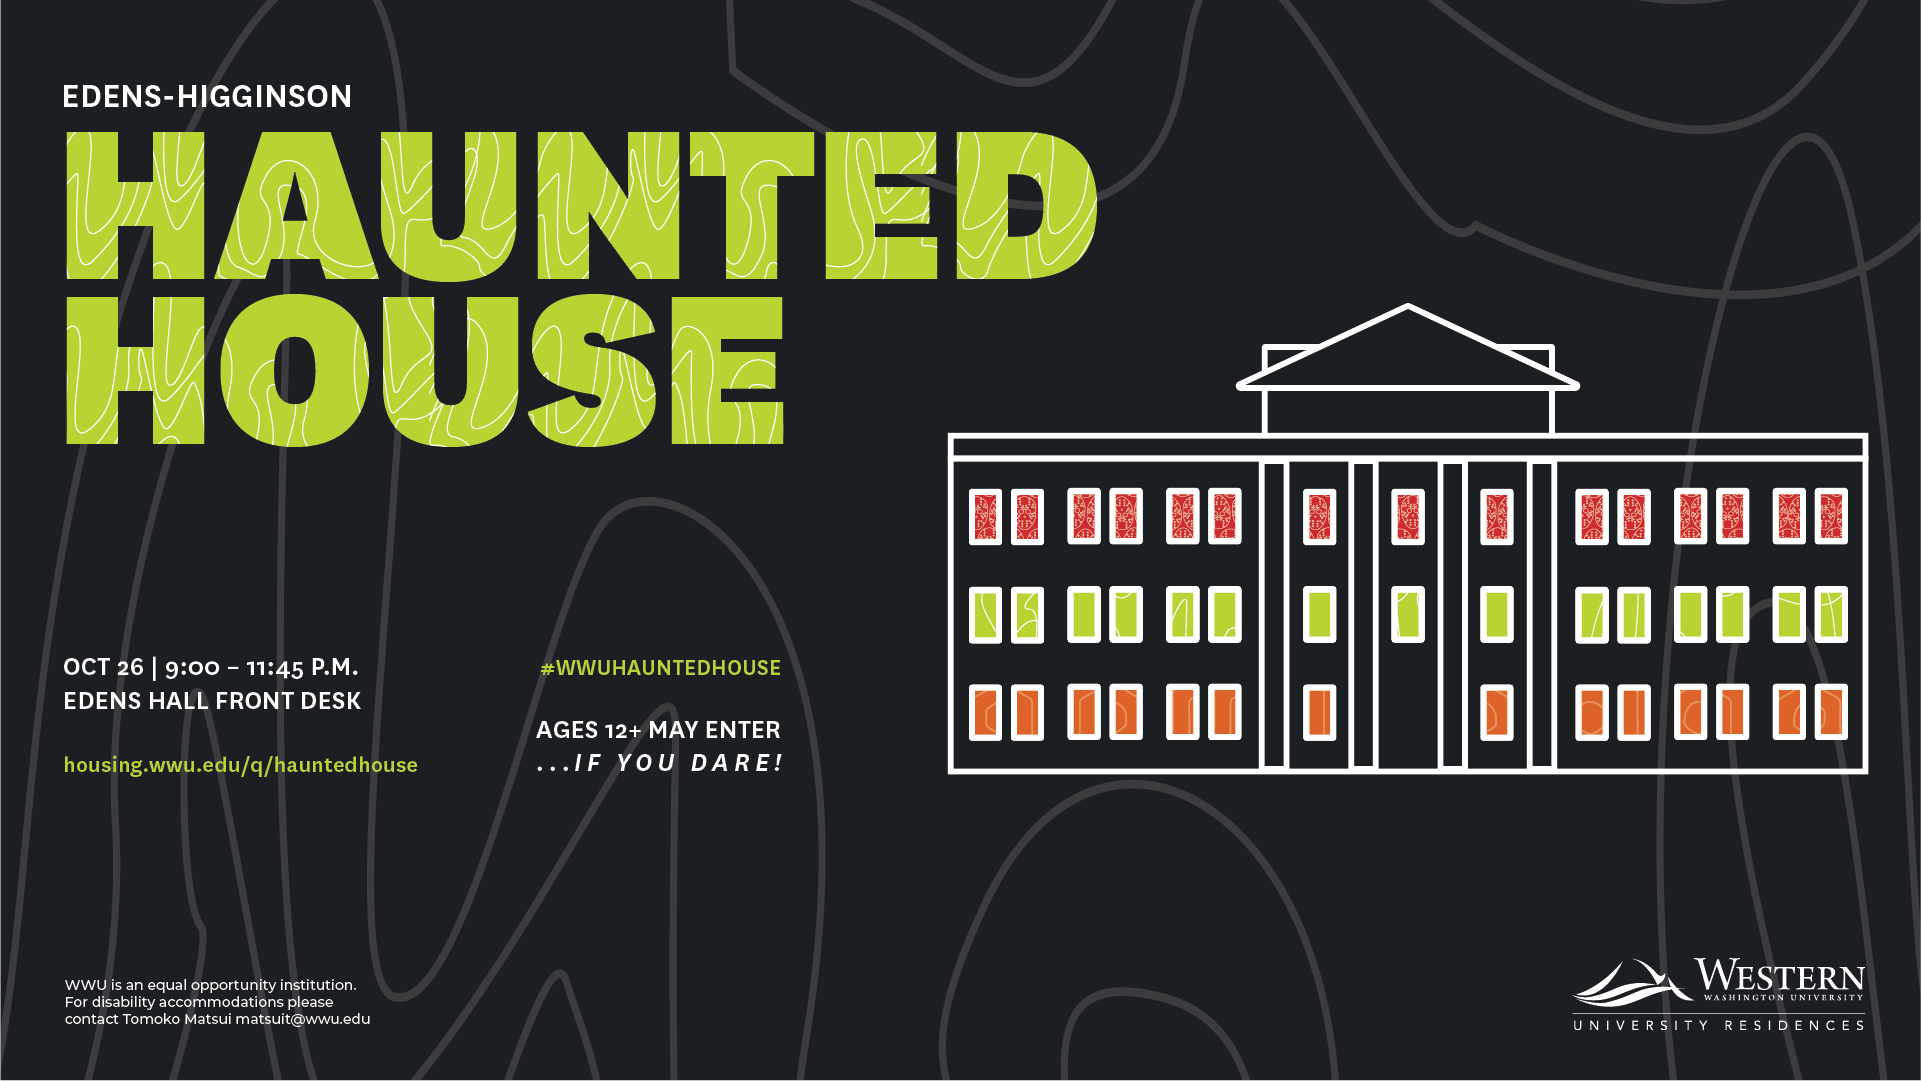 Infographic with Haunted House event information